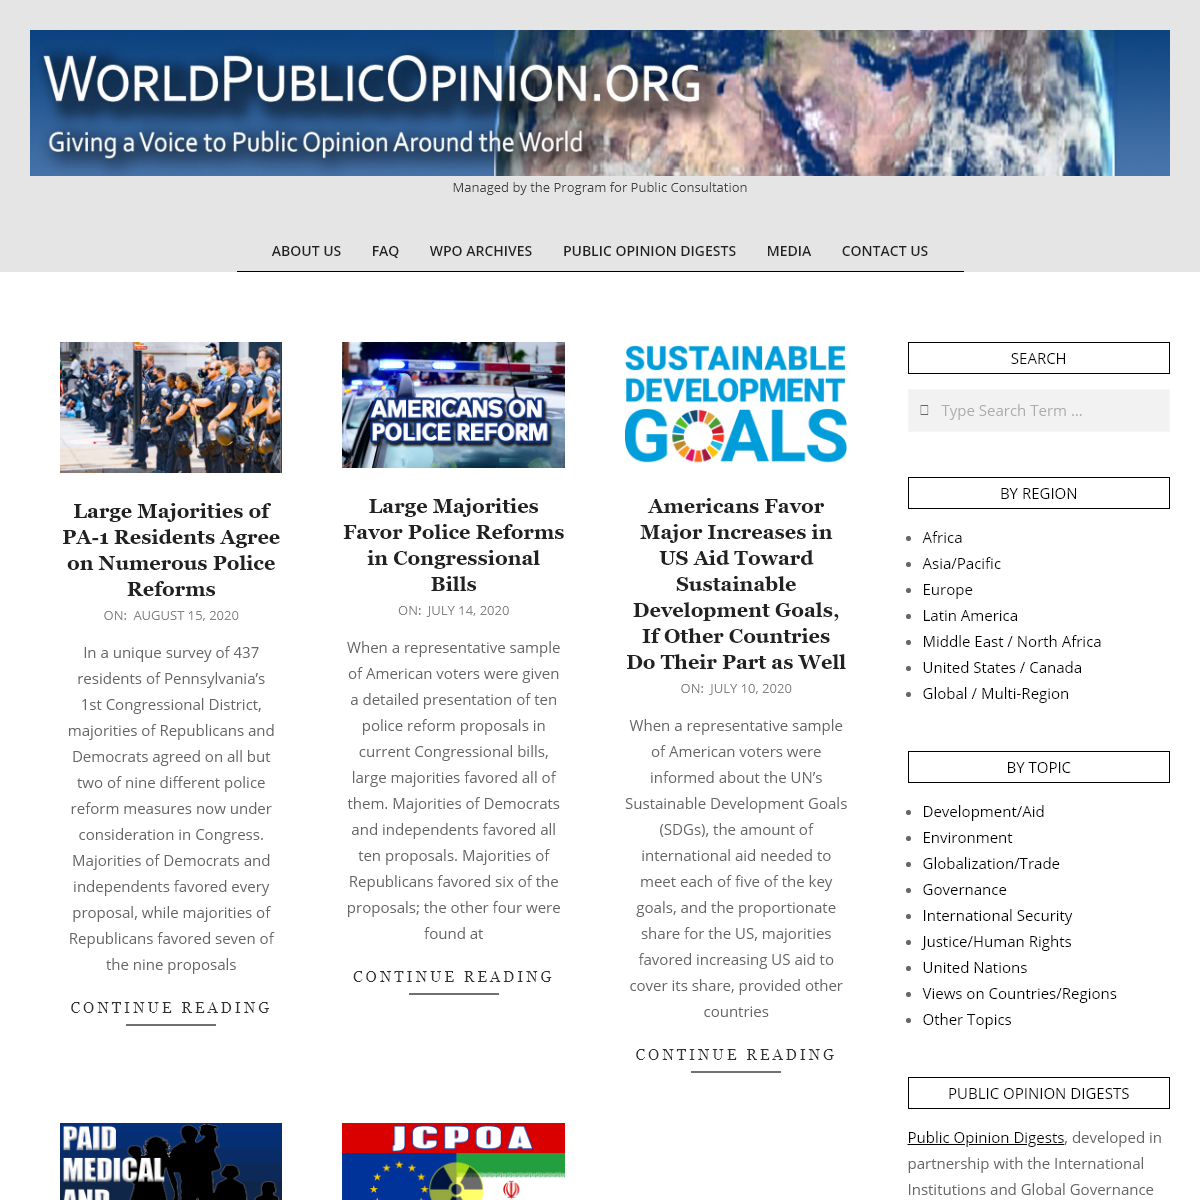 WorldPublicOpinion.org – Managed by the Program for Public Consultation